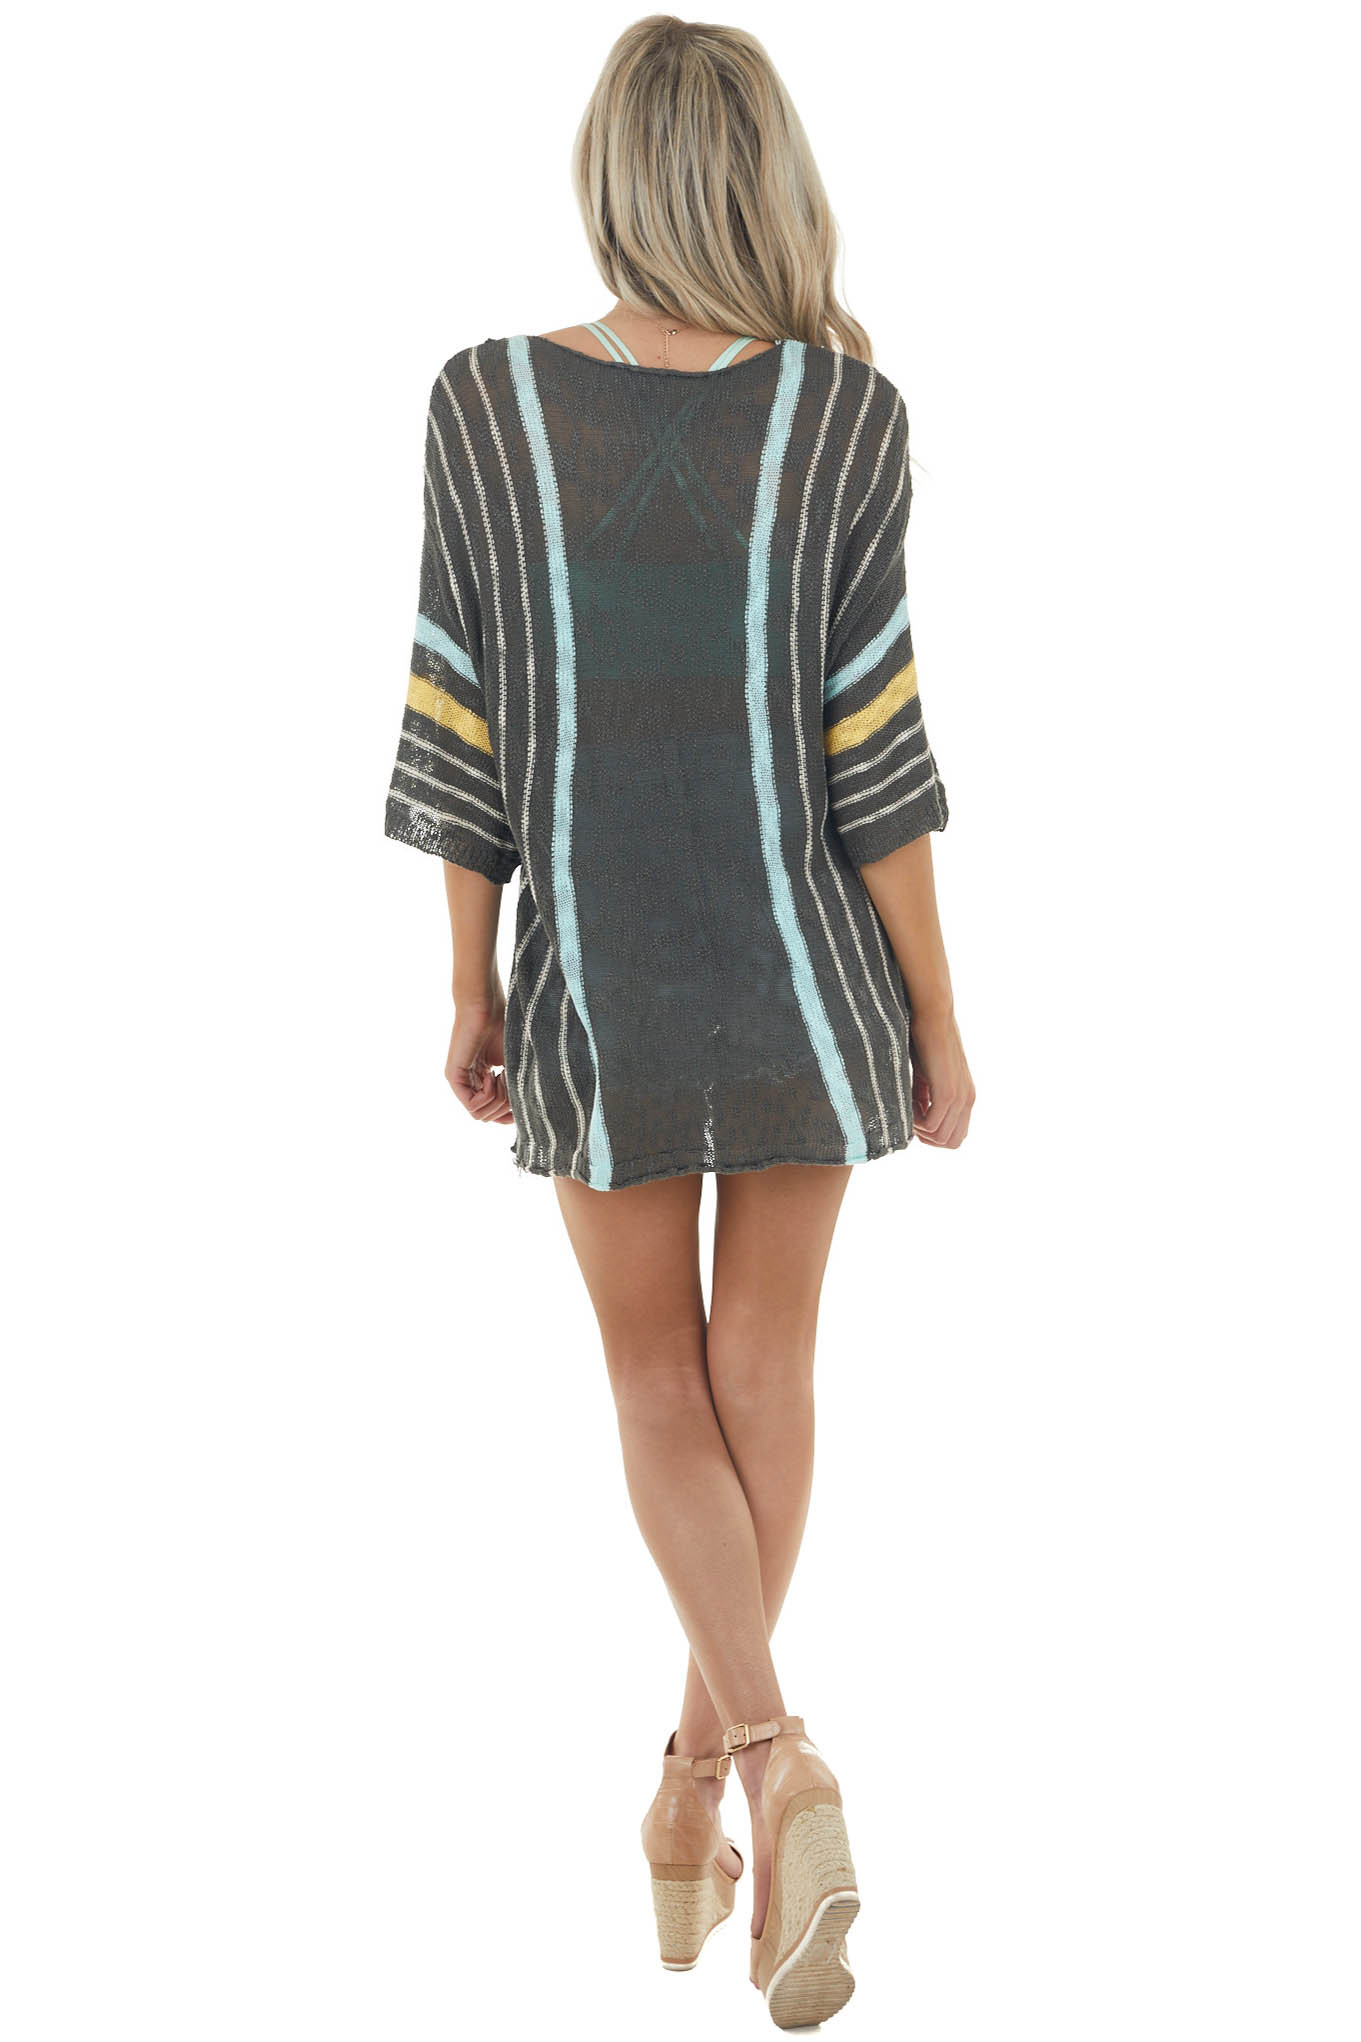 Graphite Striped Loose Fit Sweater with Half Length Sleeves